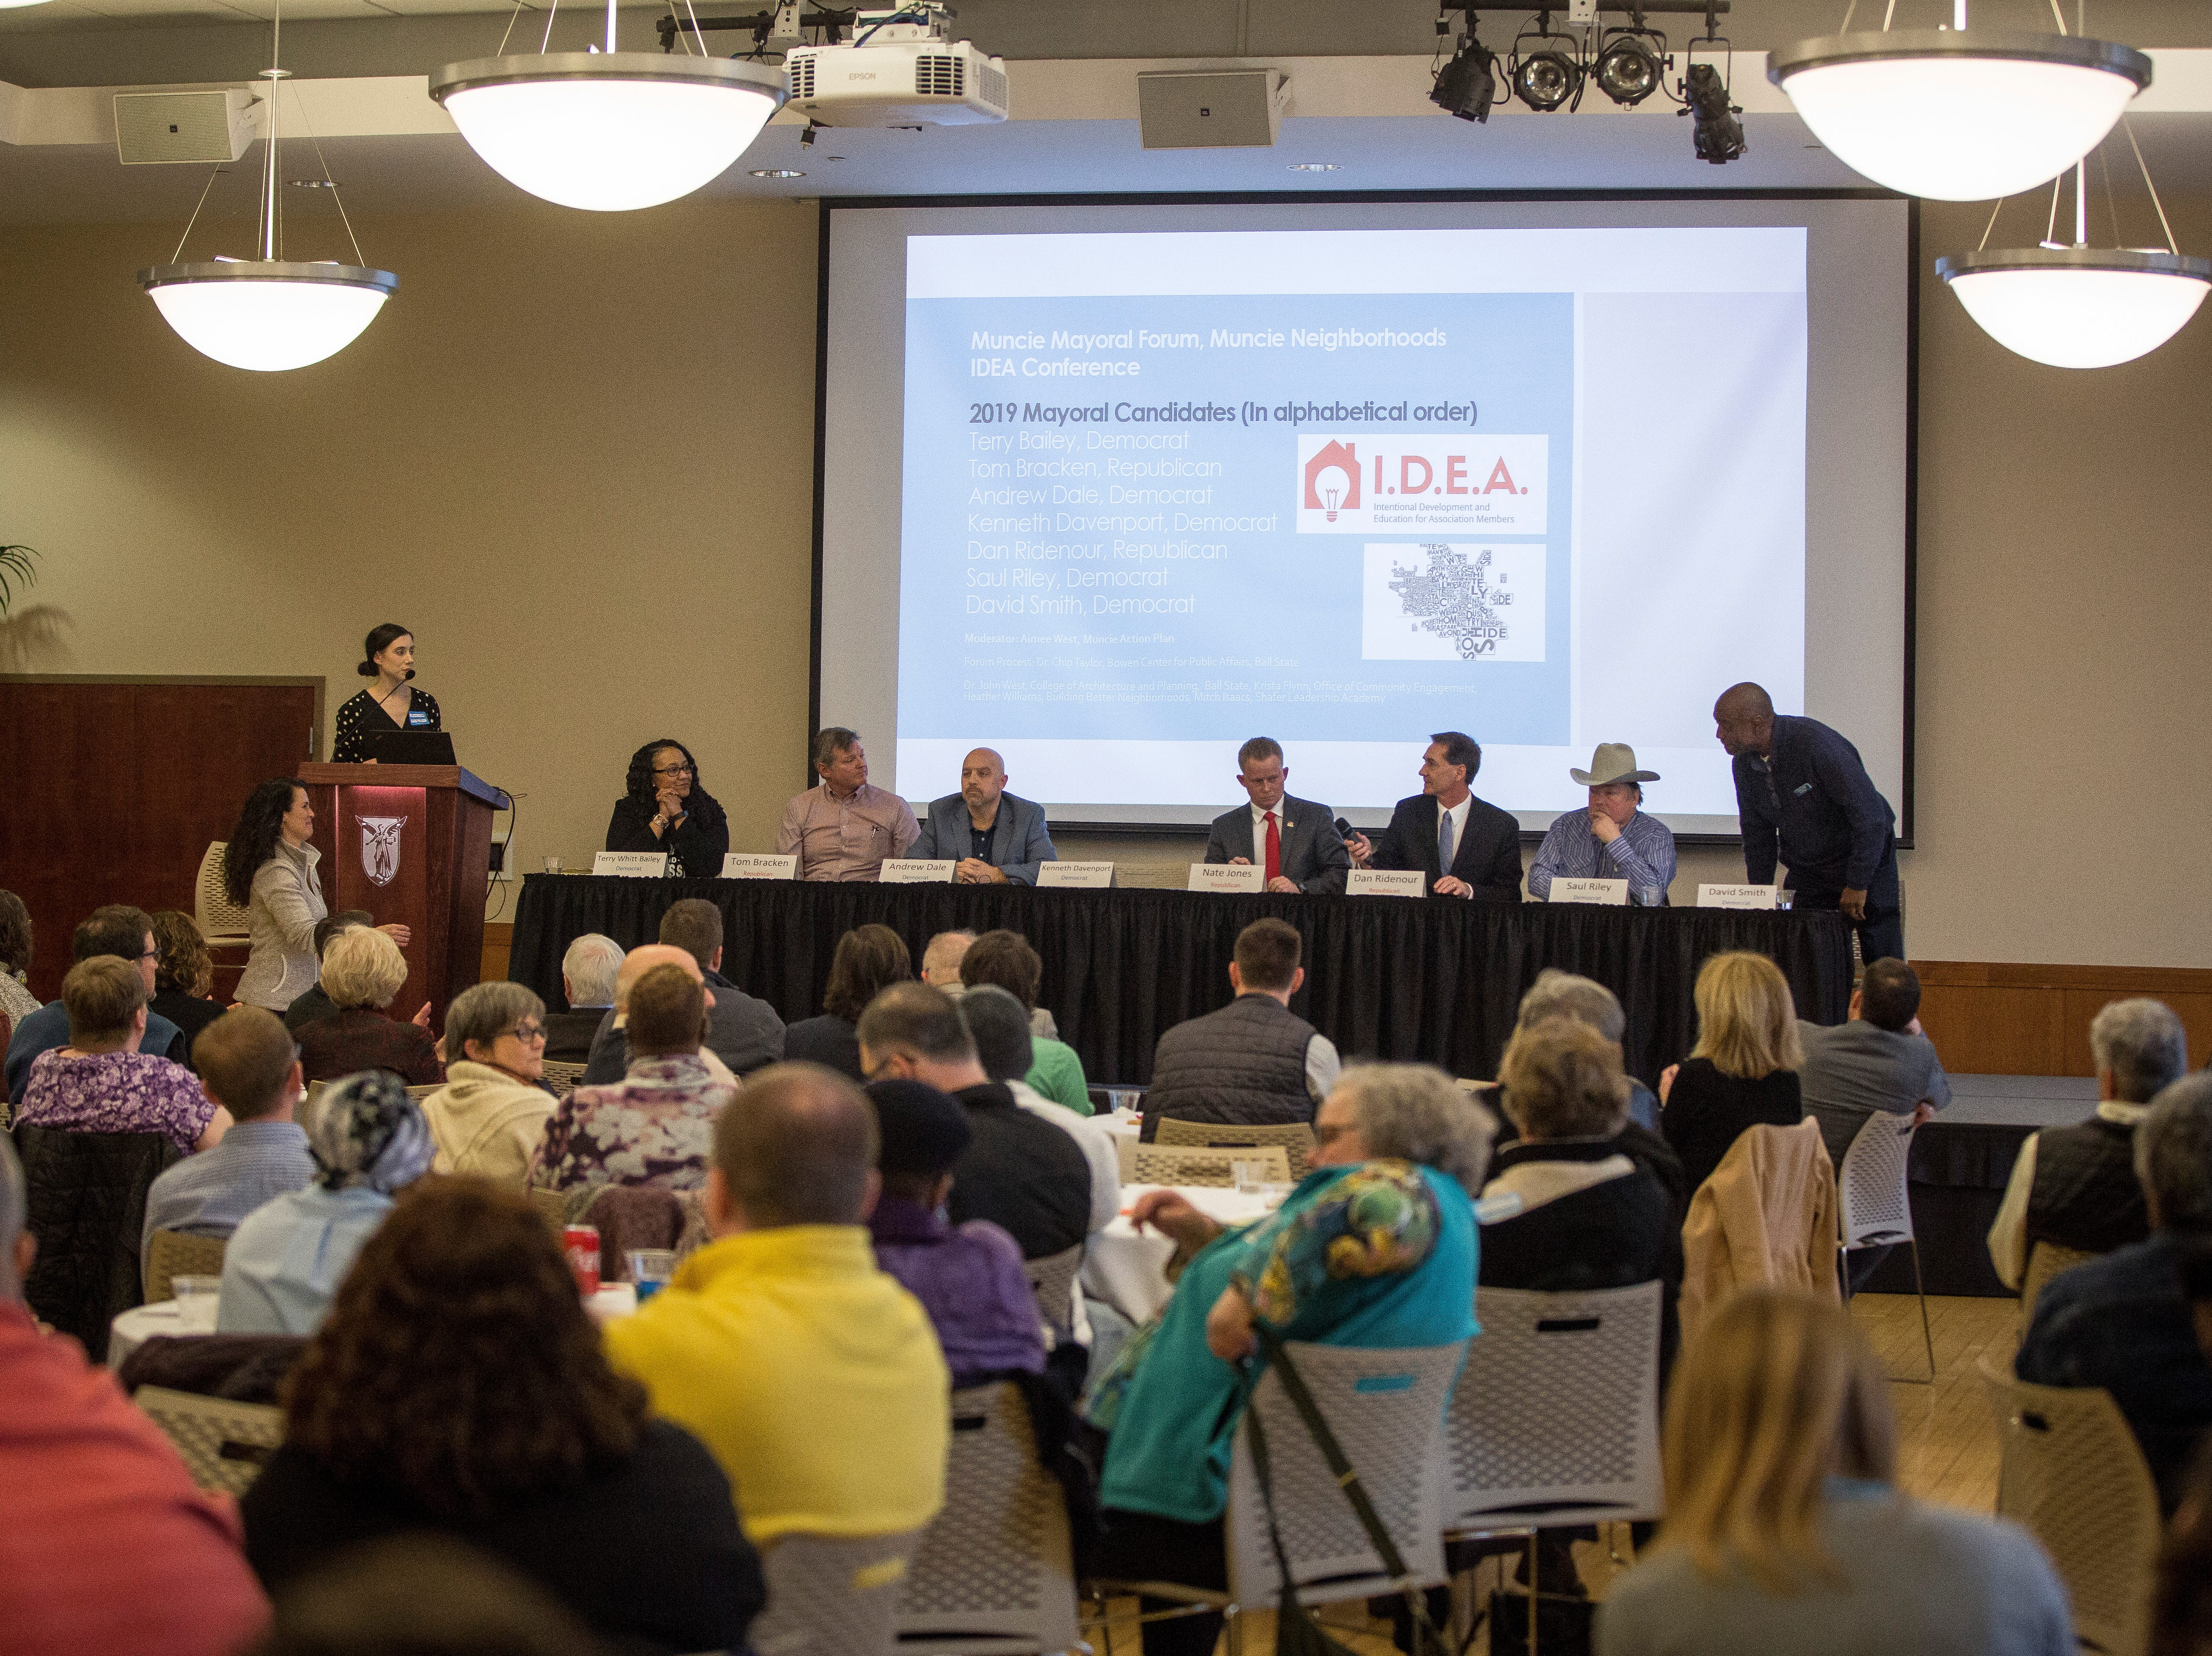 Candidates speak to the public at the Muncie Mayoral Forum at the IDEA conference on Saturday, March 2 inside the Ball State's student center.